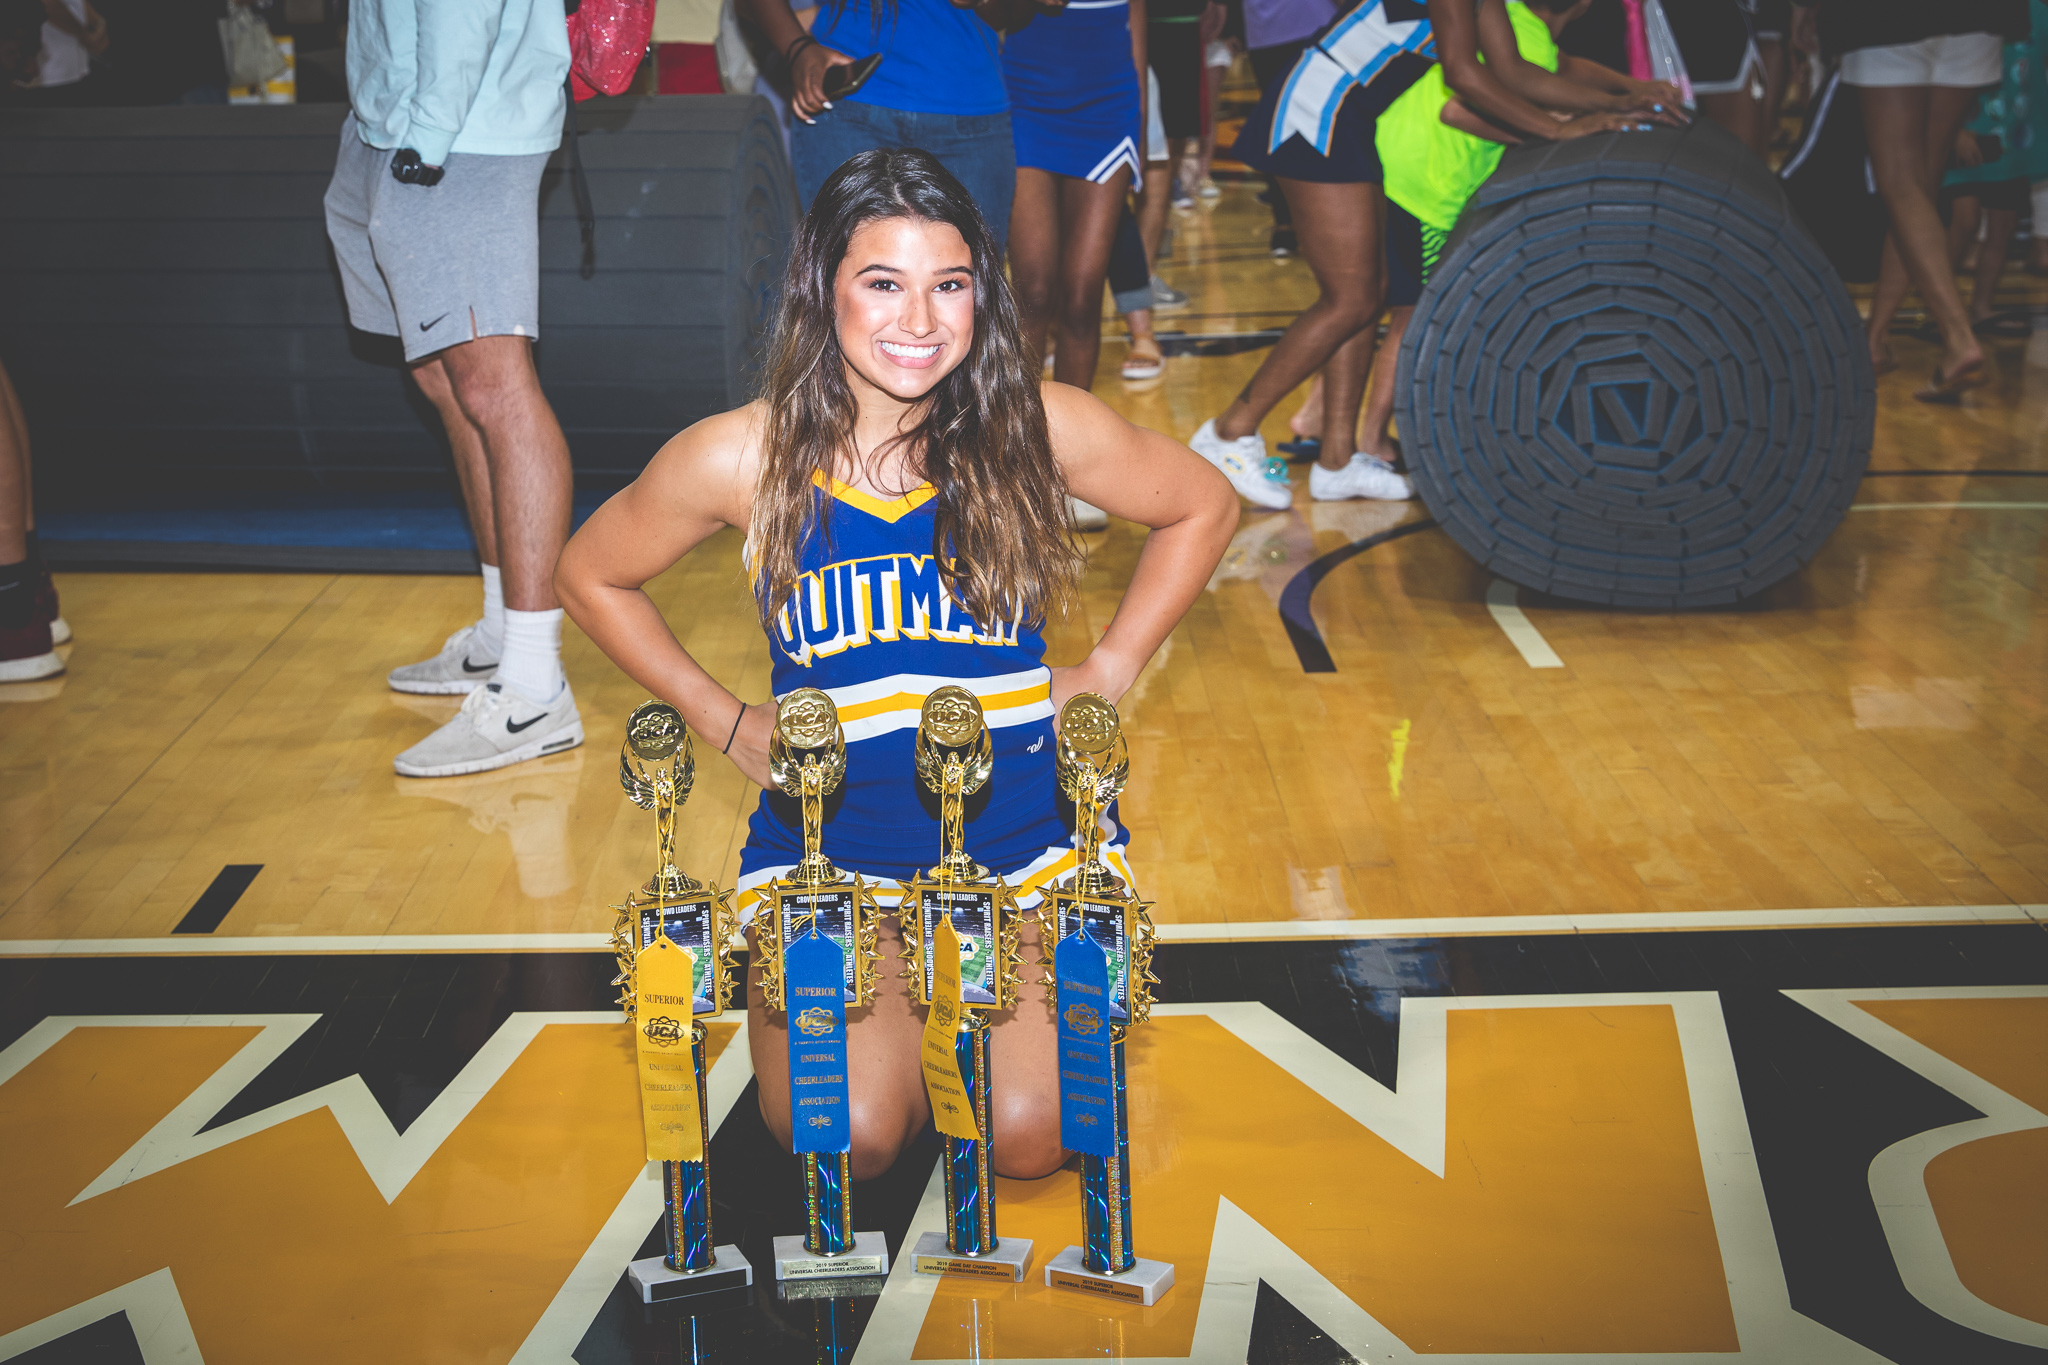 Erin poses behind trophies at cheer camp.